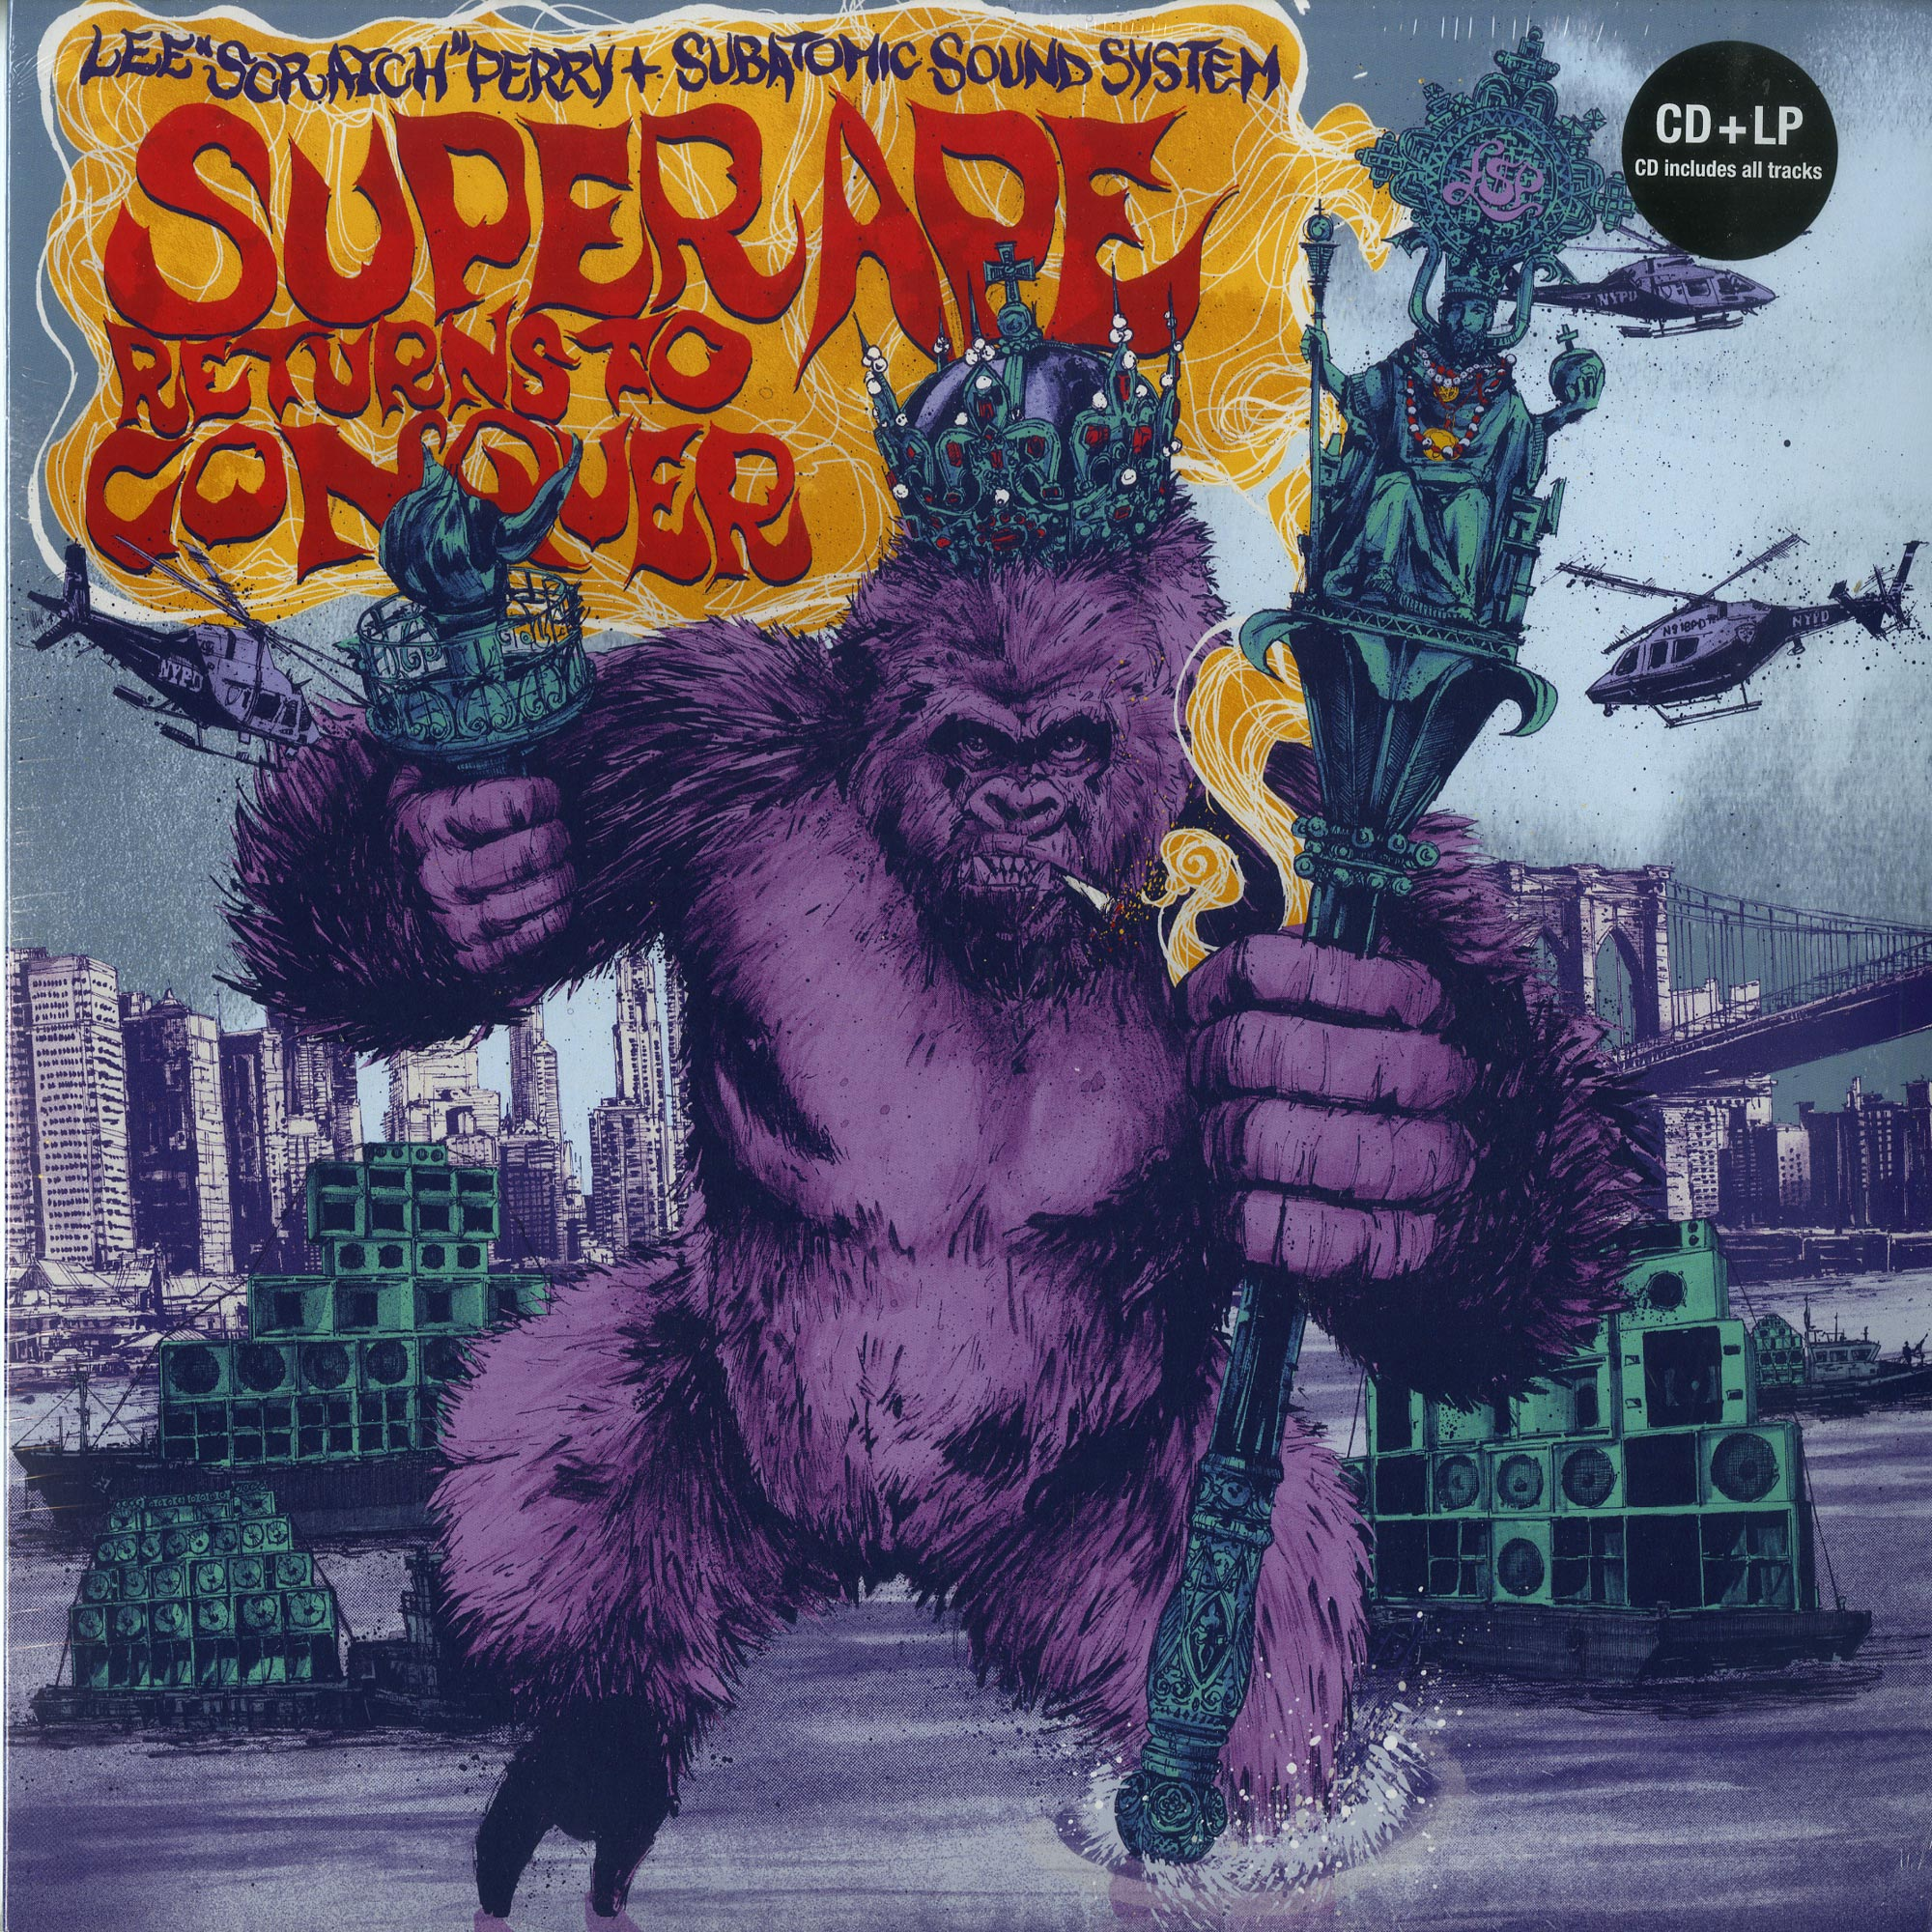 Lee Scratch Perry & Subatomic Sound System - SUPER APE RETURNS TO CONQUER